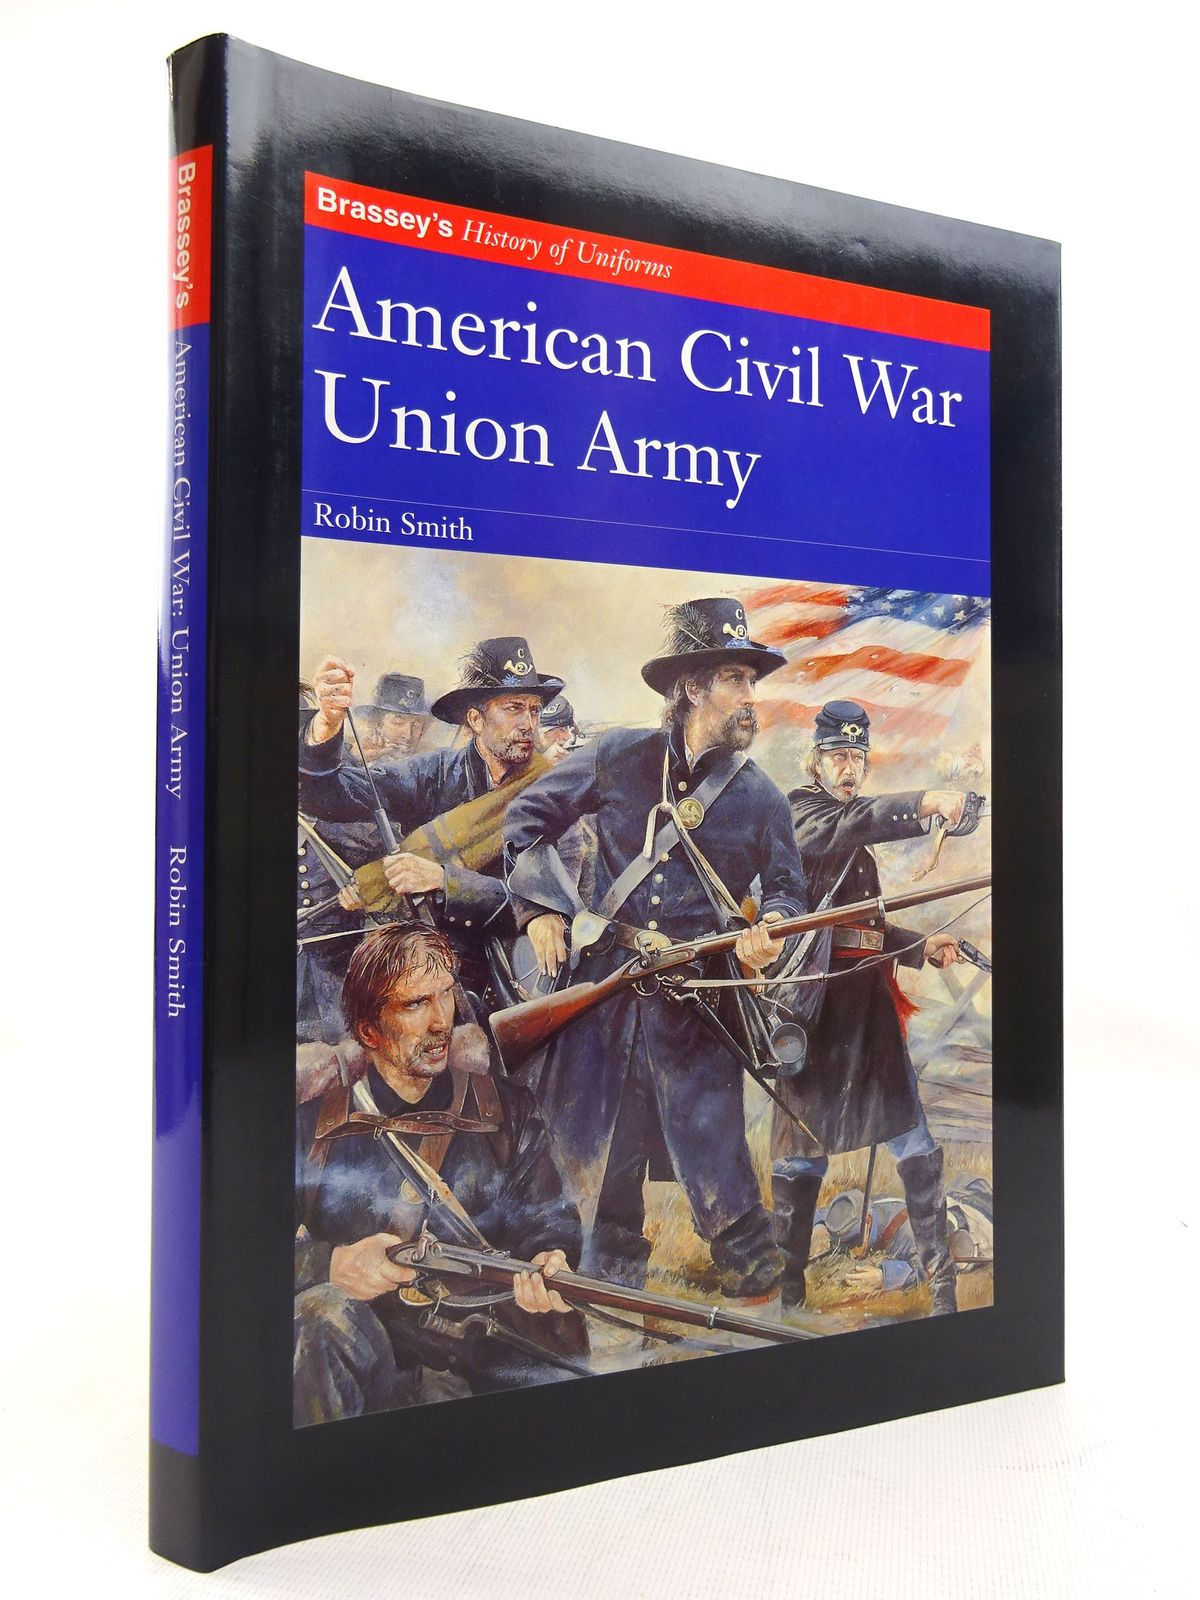 Photo of AMERICAN CIVIL WAR UNION ARMY written by Smith, Robin illustrated by Collingwood, Chris published by Brassey's (STOCK CODE: 1816014)  for sale by Stella & Rose's Books